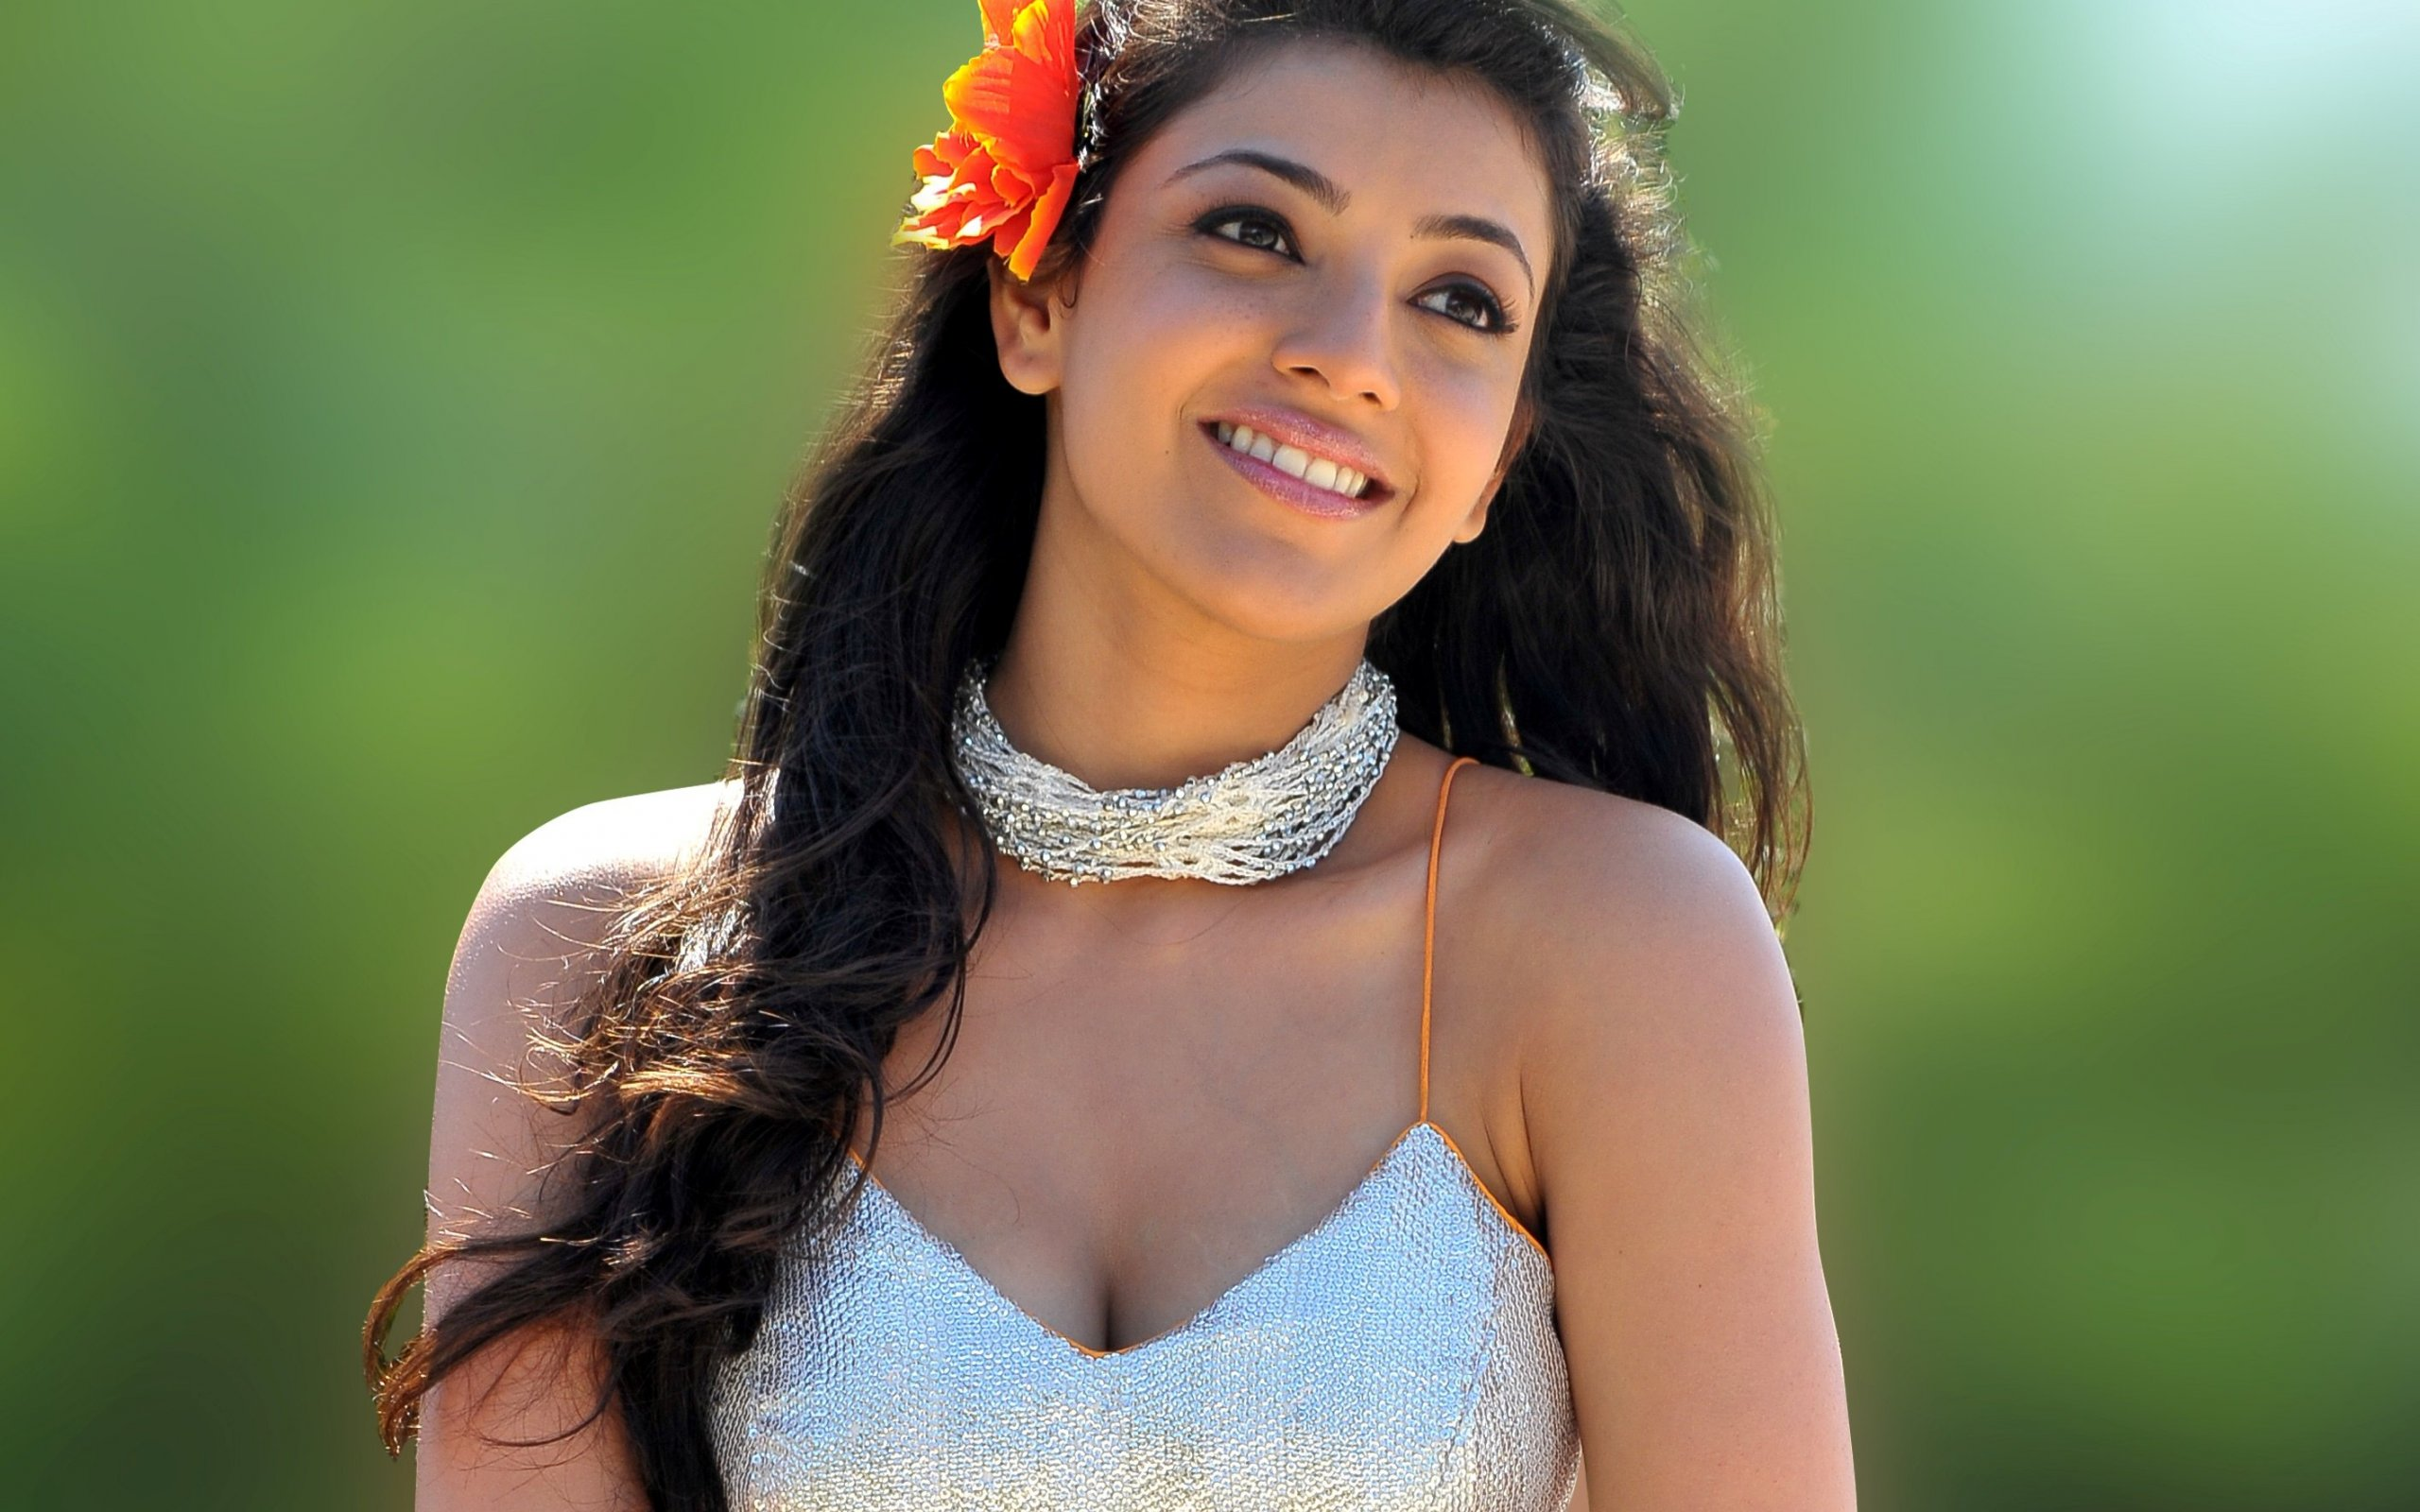 kajal agarwal full hd wallpaper and background image | 2560x1600